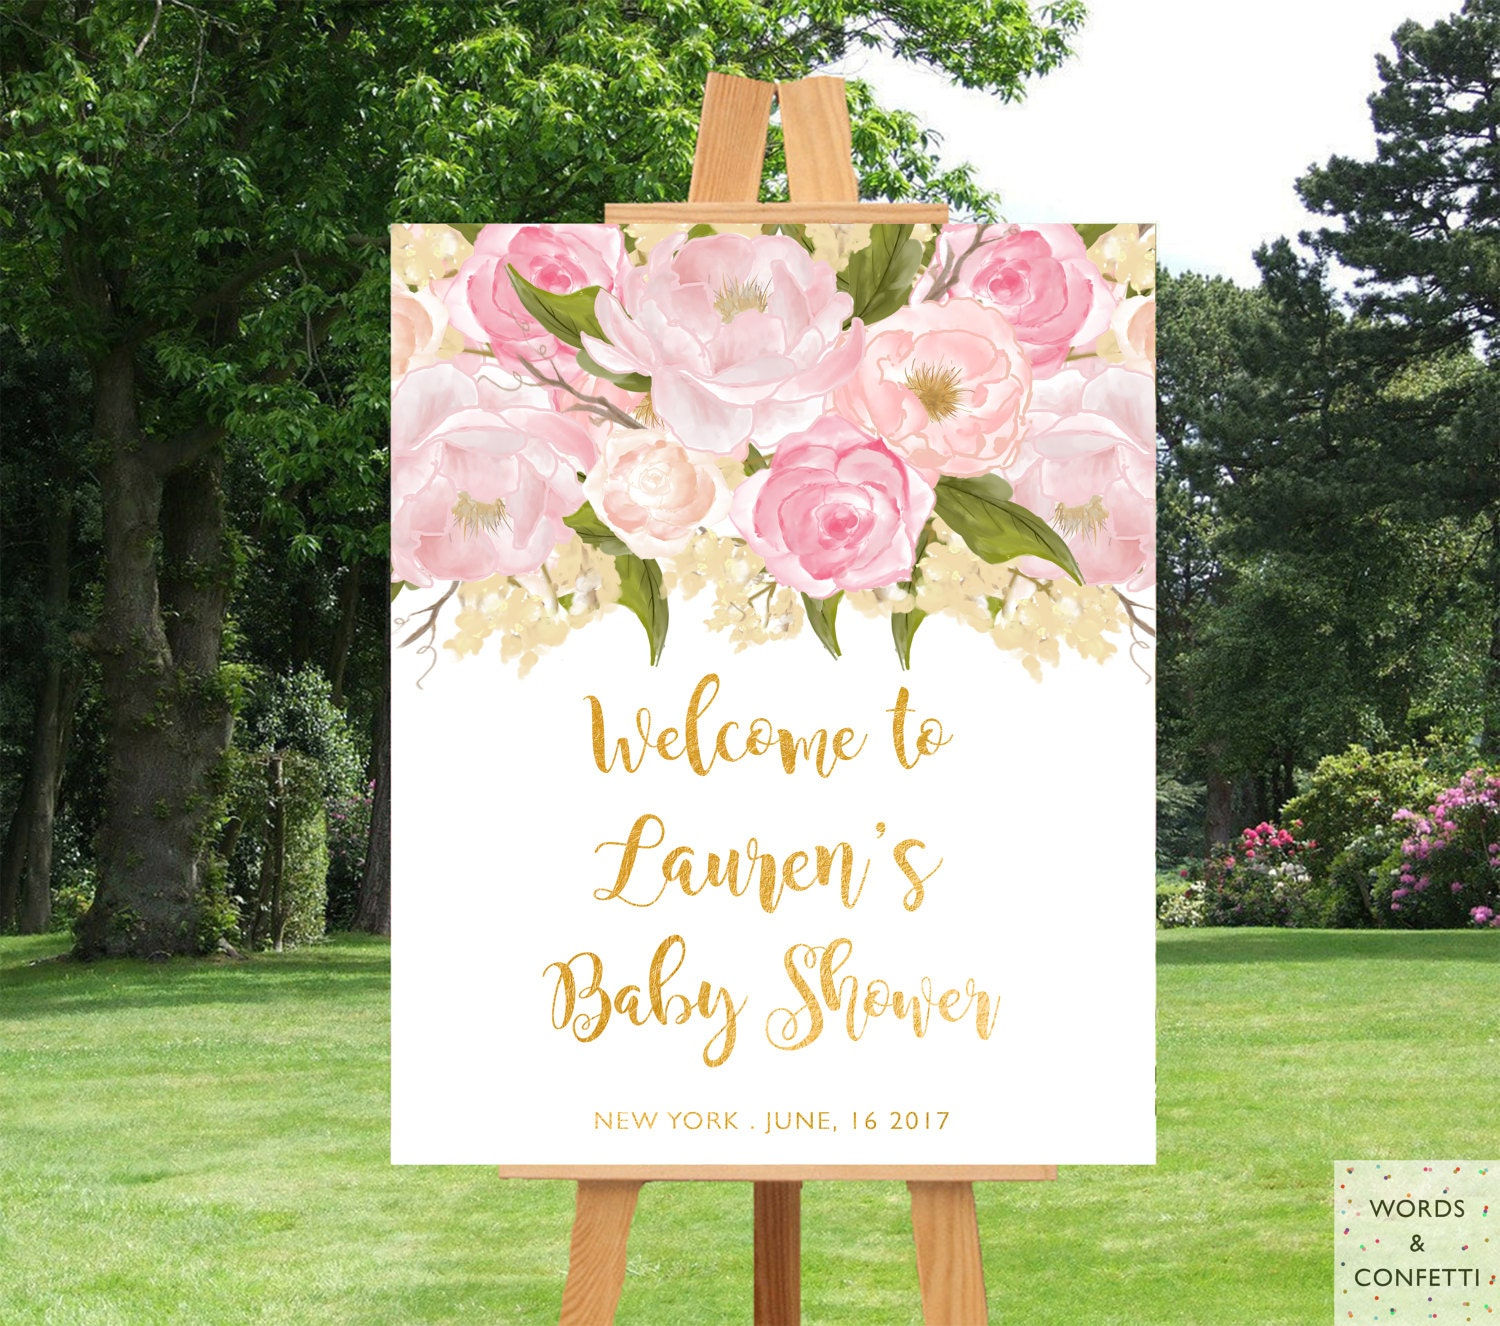 Baby shower decorations girl baby shower decor baby shower - Decoration baby shower girl ...